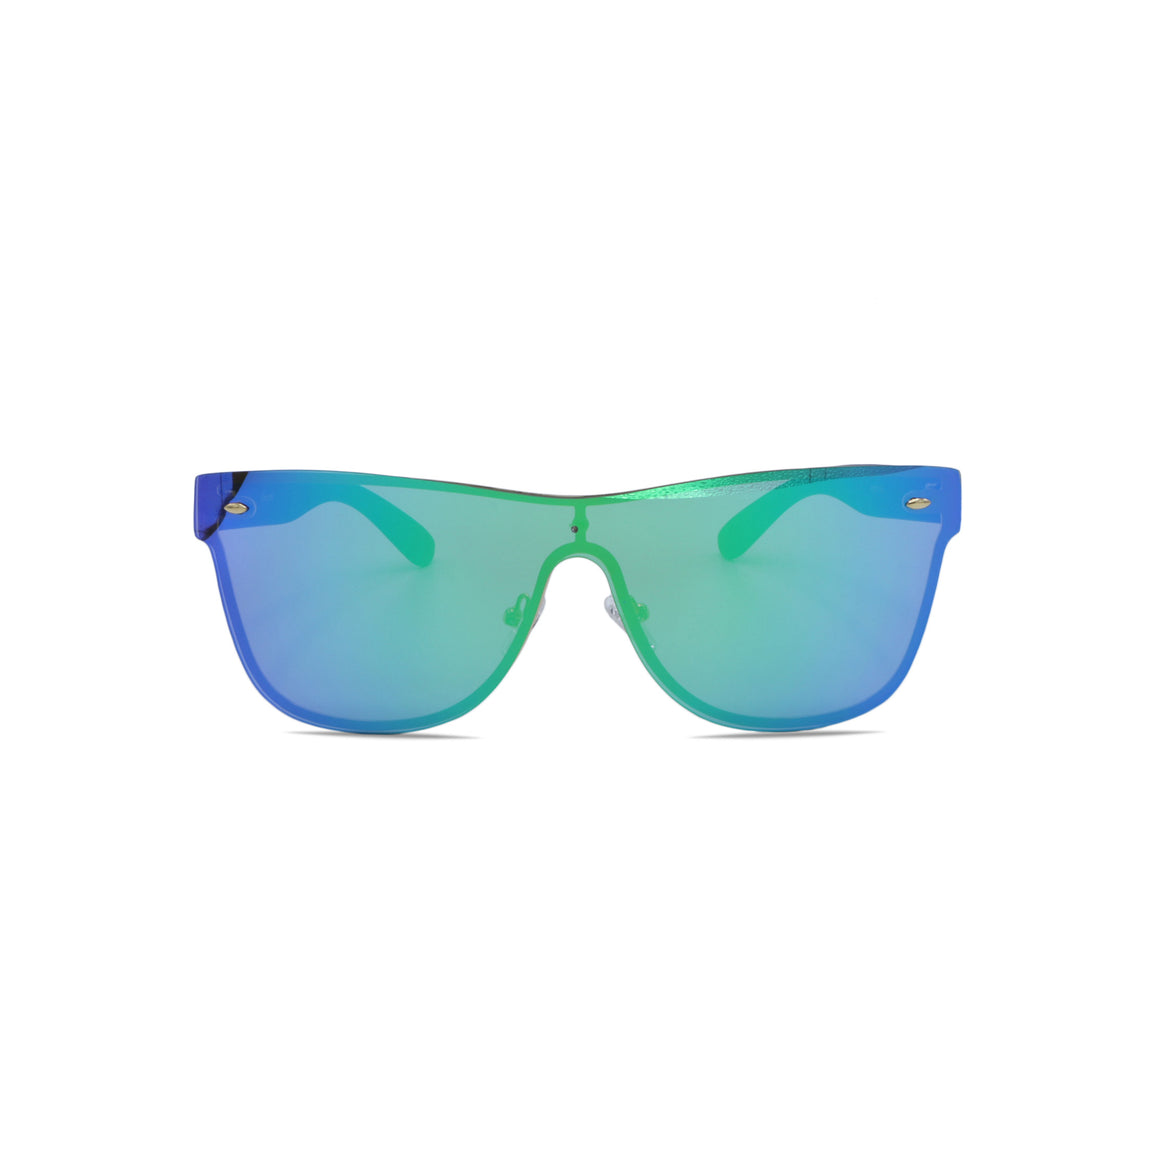 Rimless Sunglasses Gradient Lens in Blue Gradient Green Color